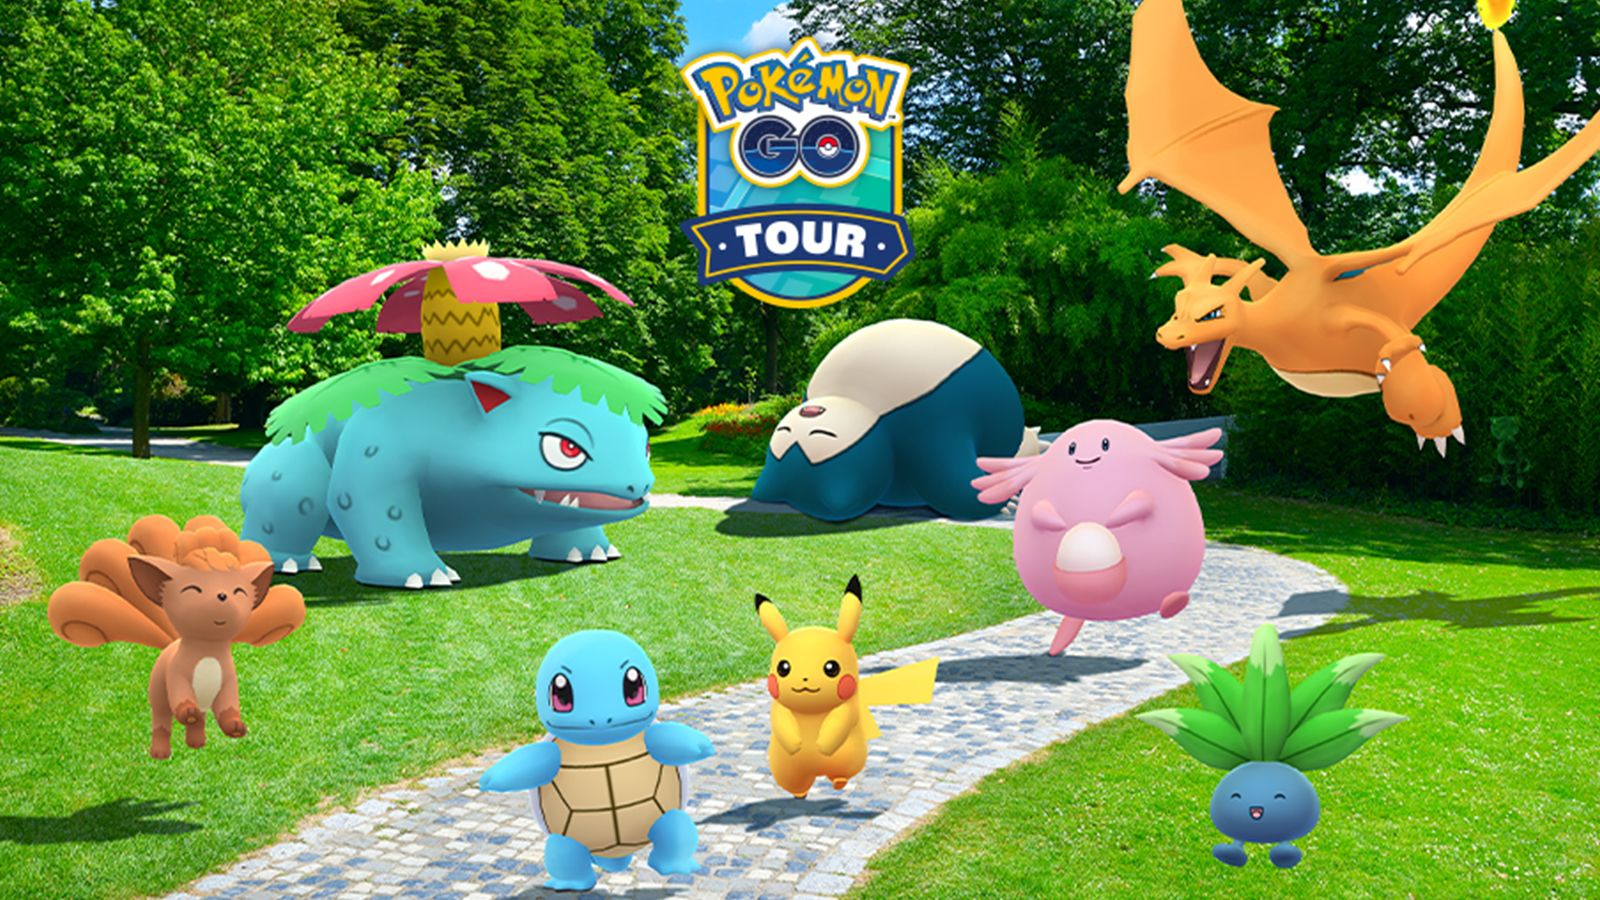 Pokémon Go Tour